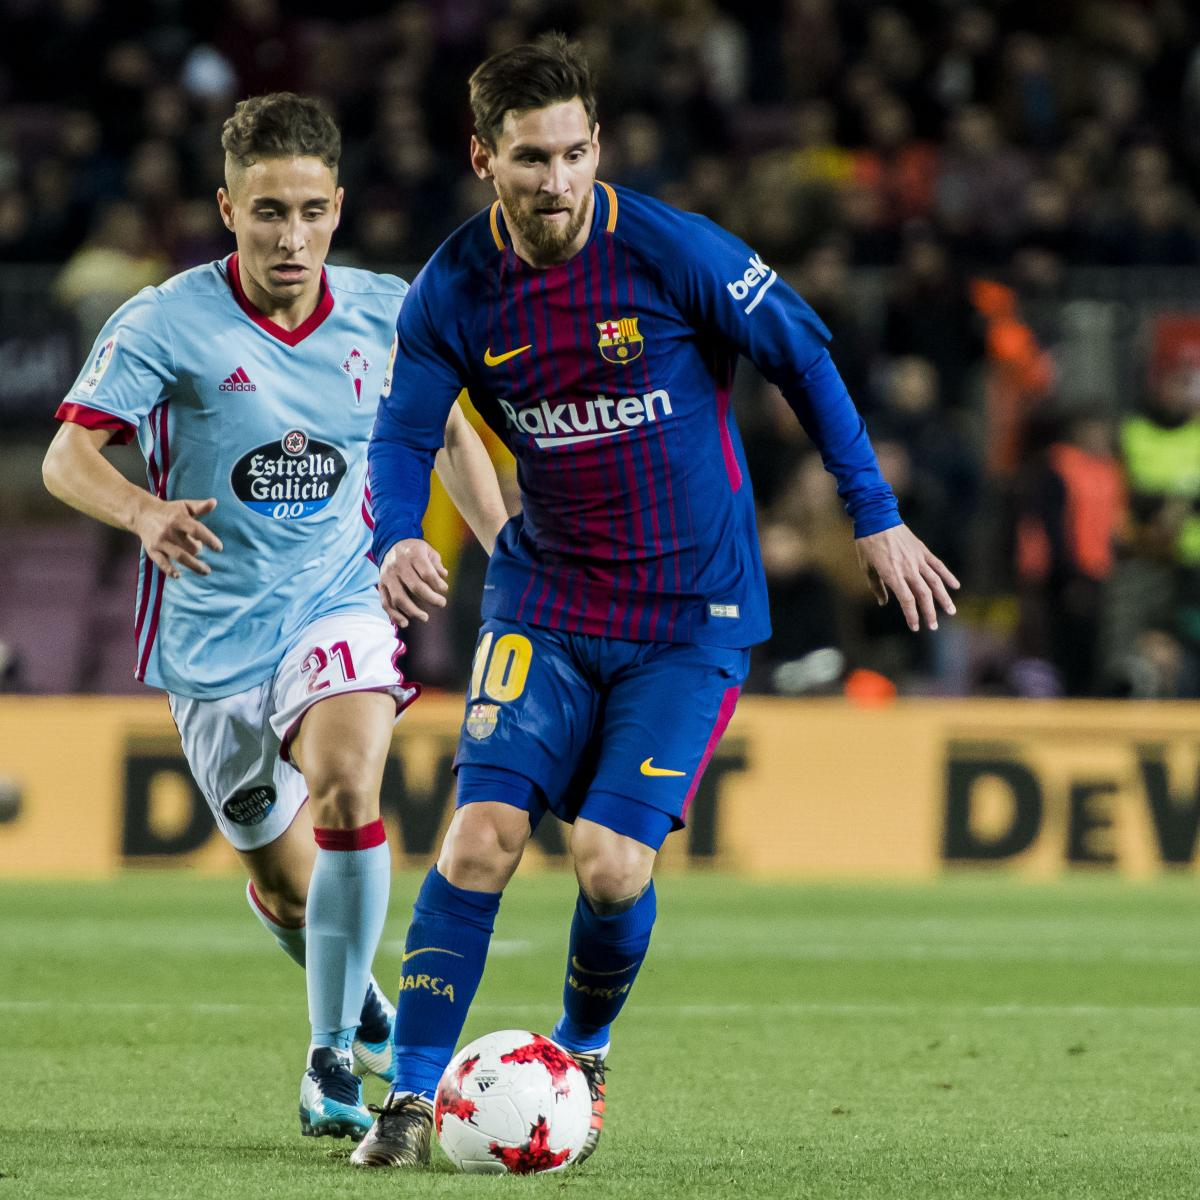 Celta Vigo Vs Barcelona Direct: Celta Vigo Vs. Barcelona: Team News, Preview, Live Stream